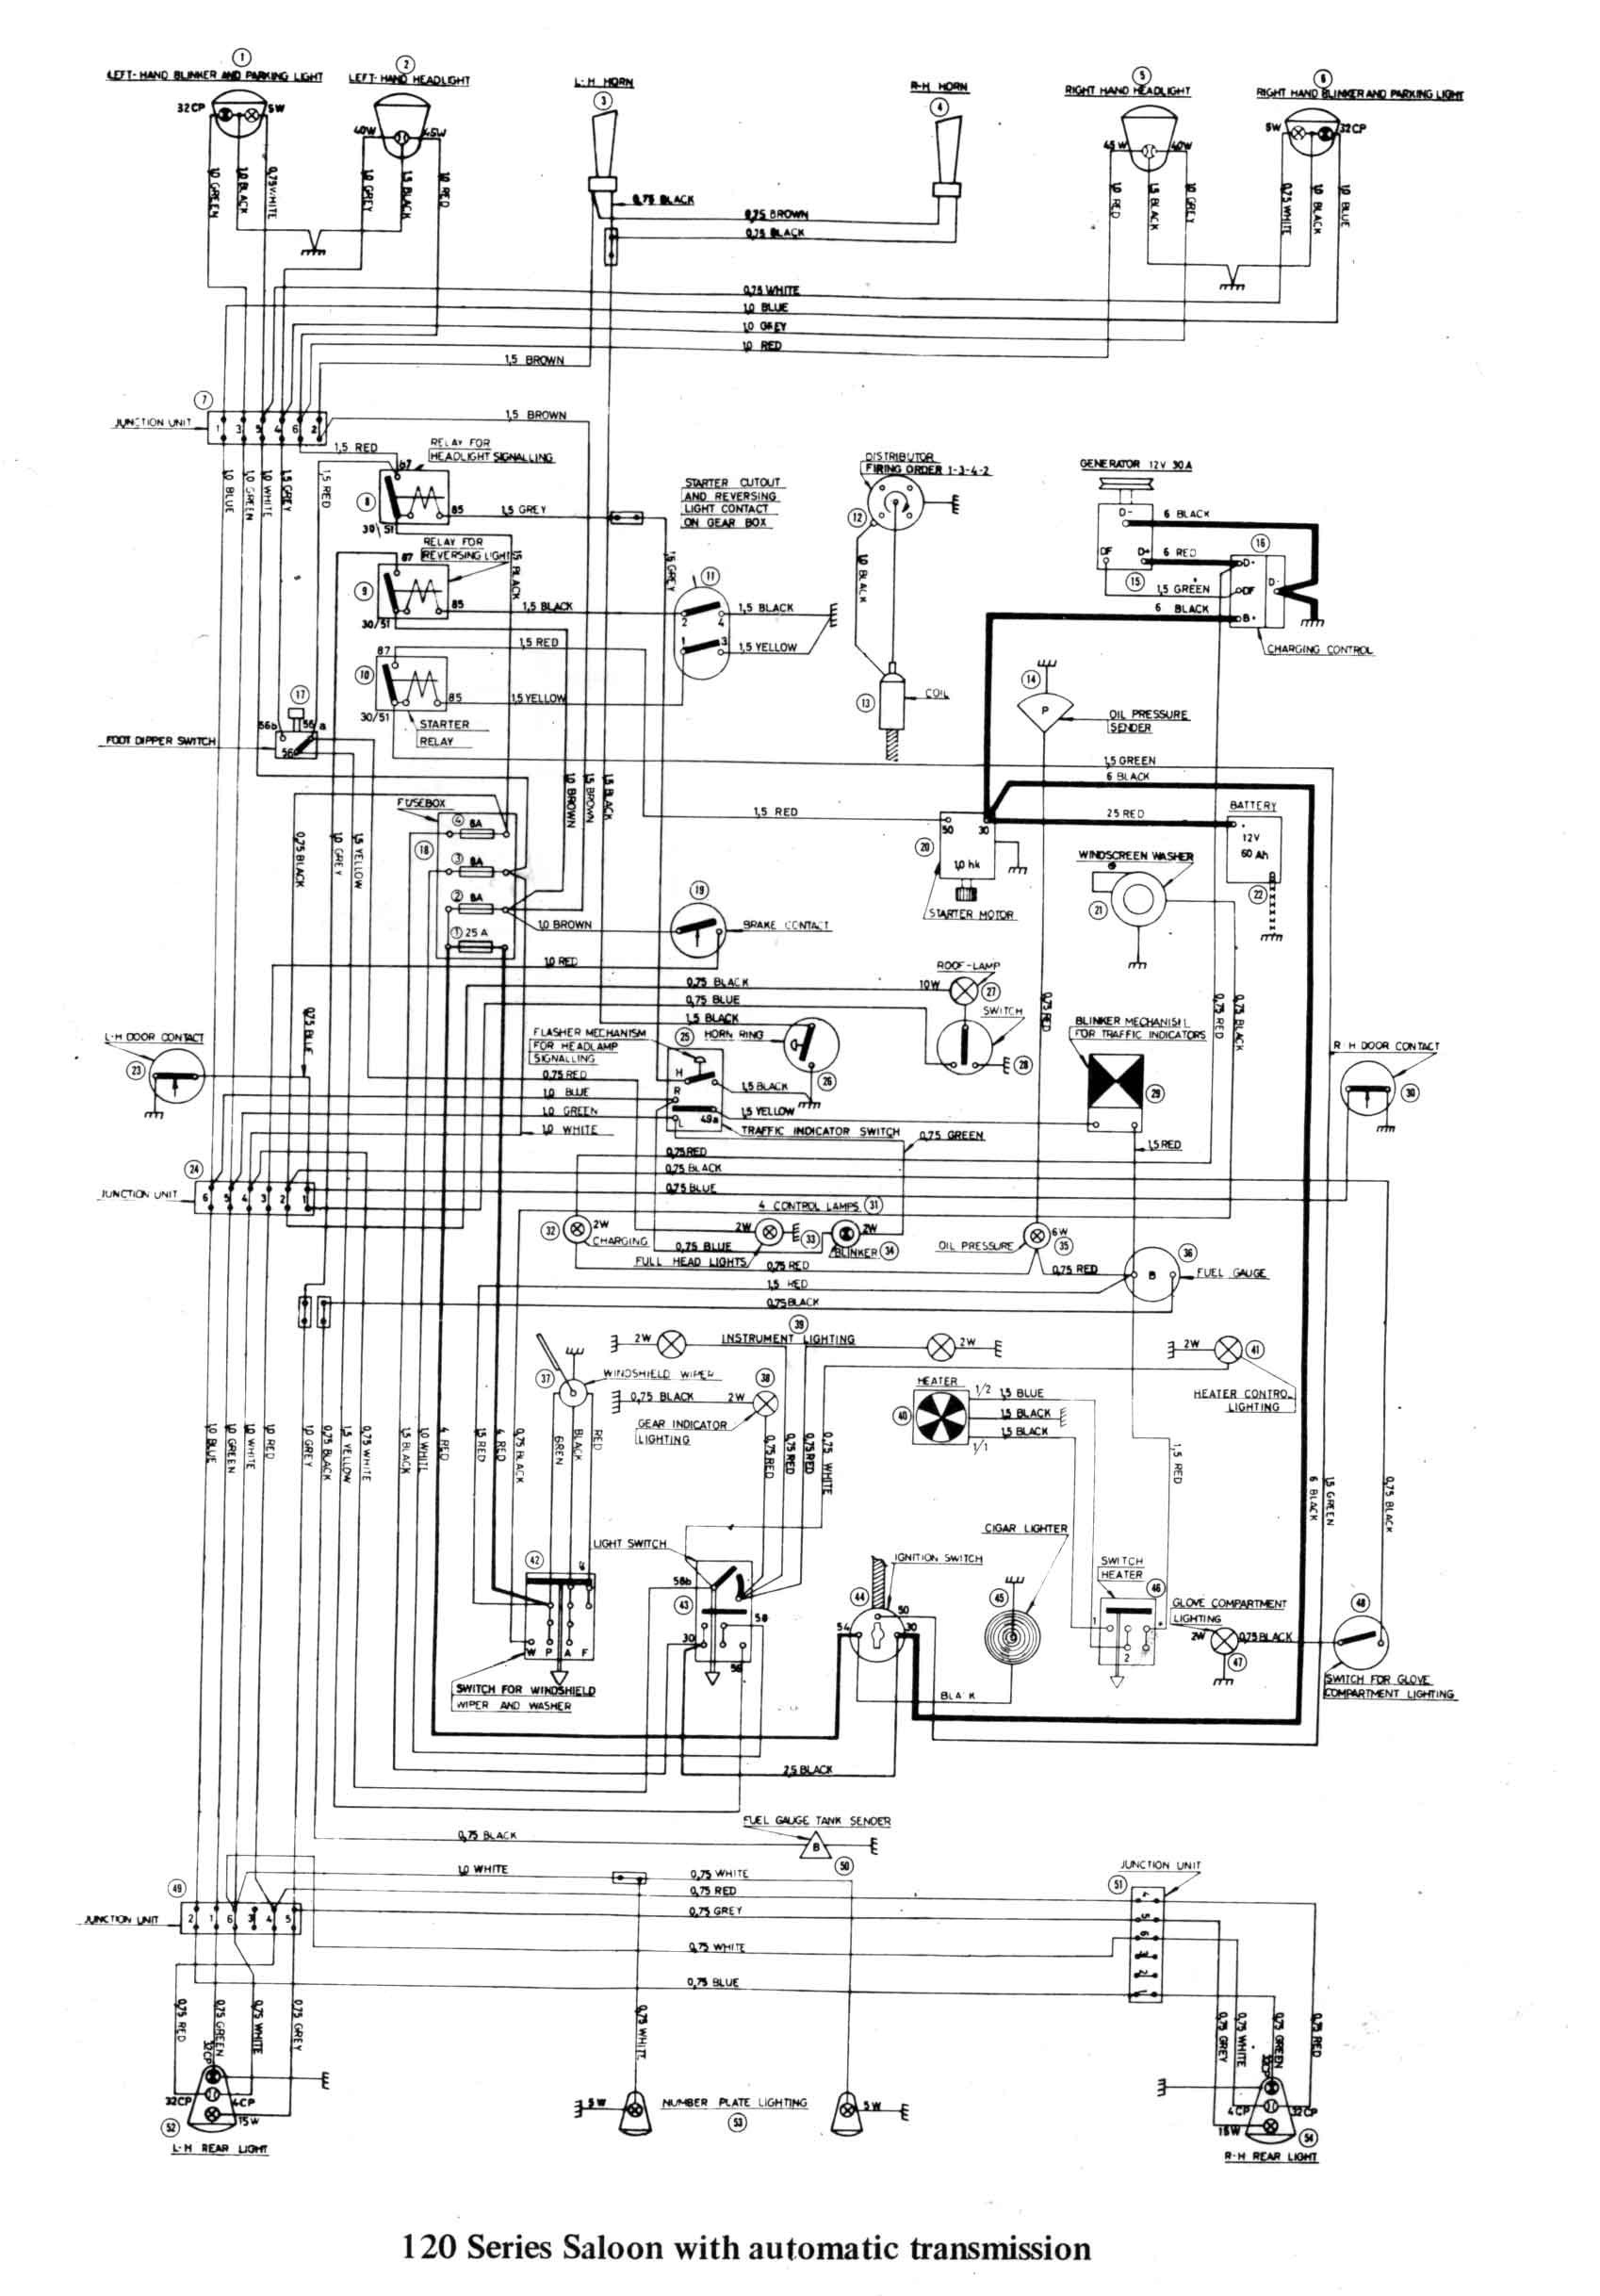 2007 volvo s40 engine diagram trusted wiring diagrams \u2022 volvo t5 engine diagram s40 engine diagram diy enthusiasts wiring diagrams u2022 rh wiringdiagramnetwork today 2007 volvo s40 thermostat 2007 volvo s40 thermostat